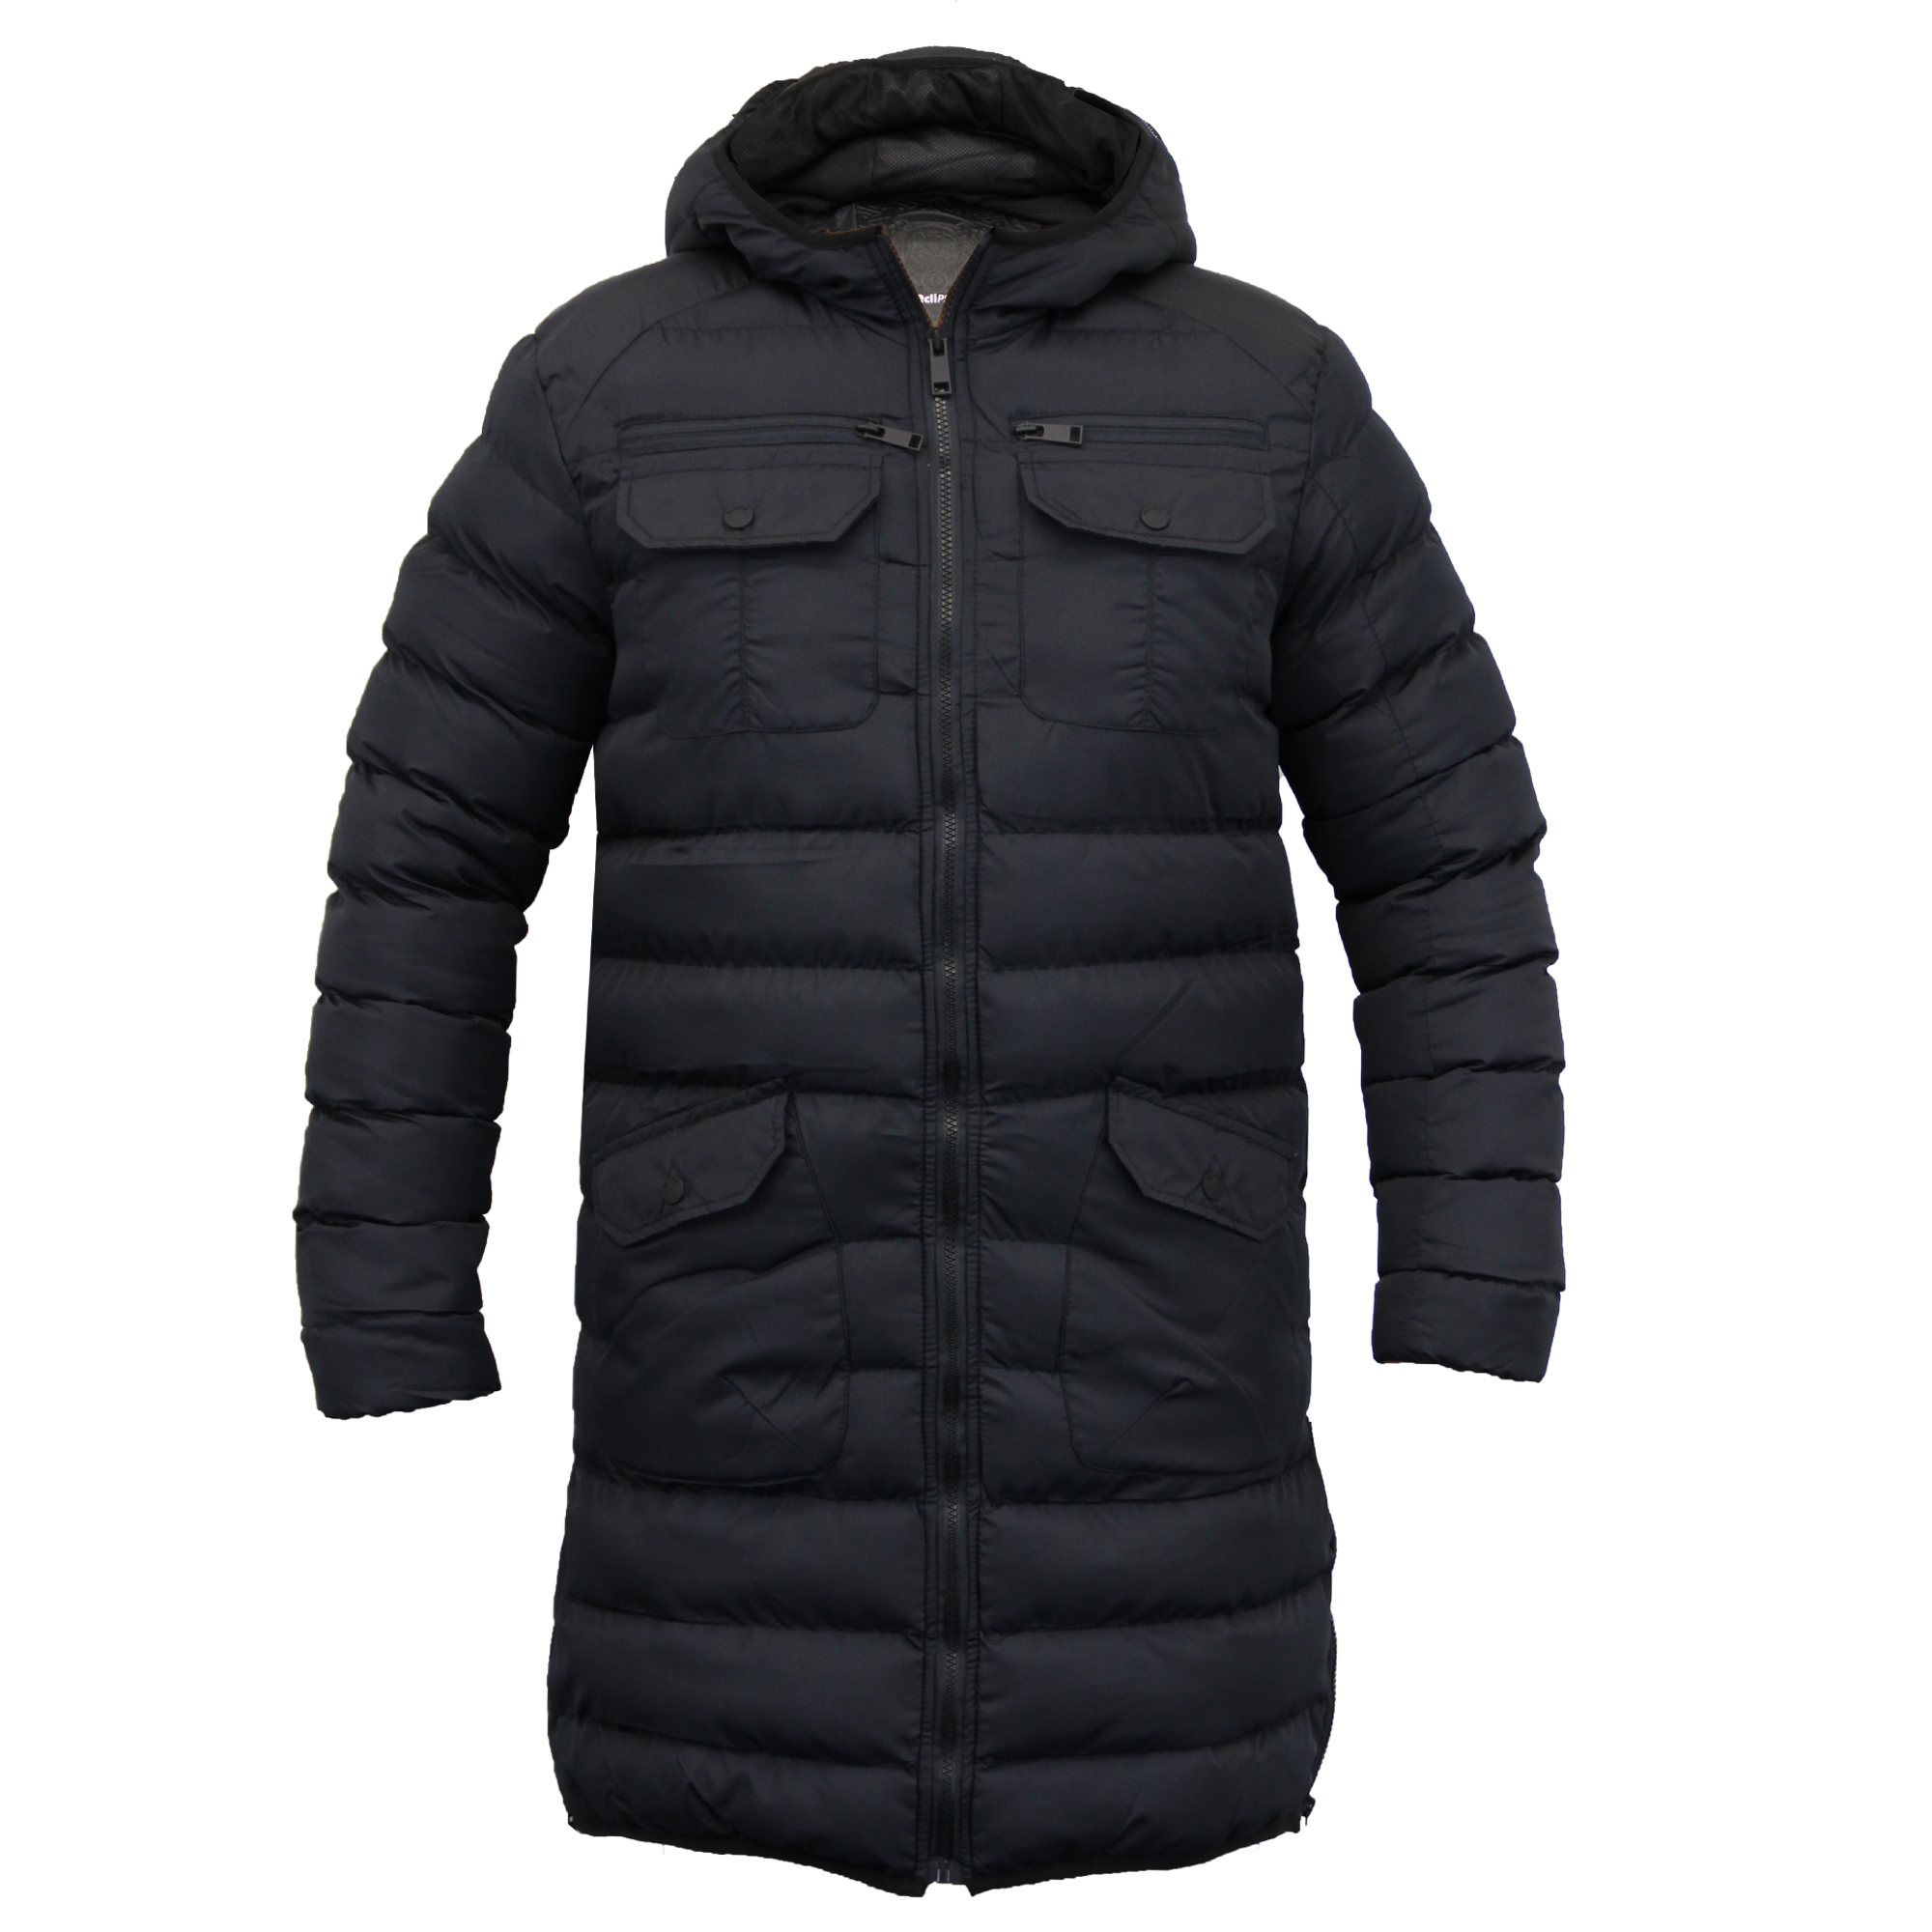 Padded Coats. Clothing. Women. Womens Coats & Jackets. Padded Coats. Showing 48 of results that match your query. Search Product Result. Product - Men Winter Hooded Thick Padded Jacket Zipper Slim Outwear Coat Warm Outwear Coat. Product Image. Price $ 99 - $ Product Title.